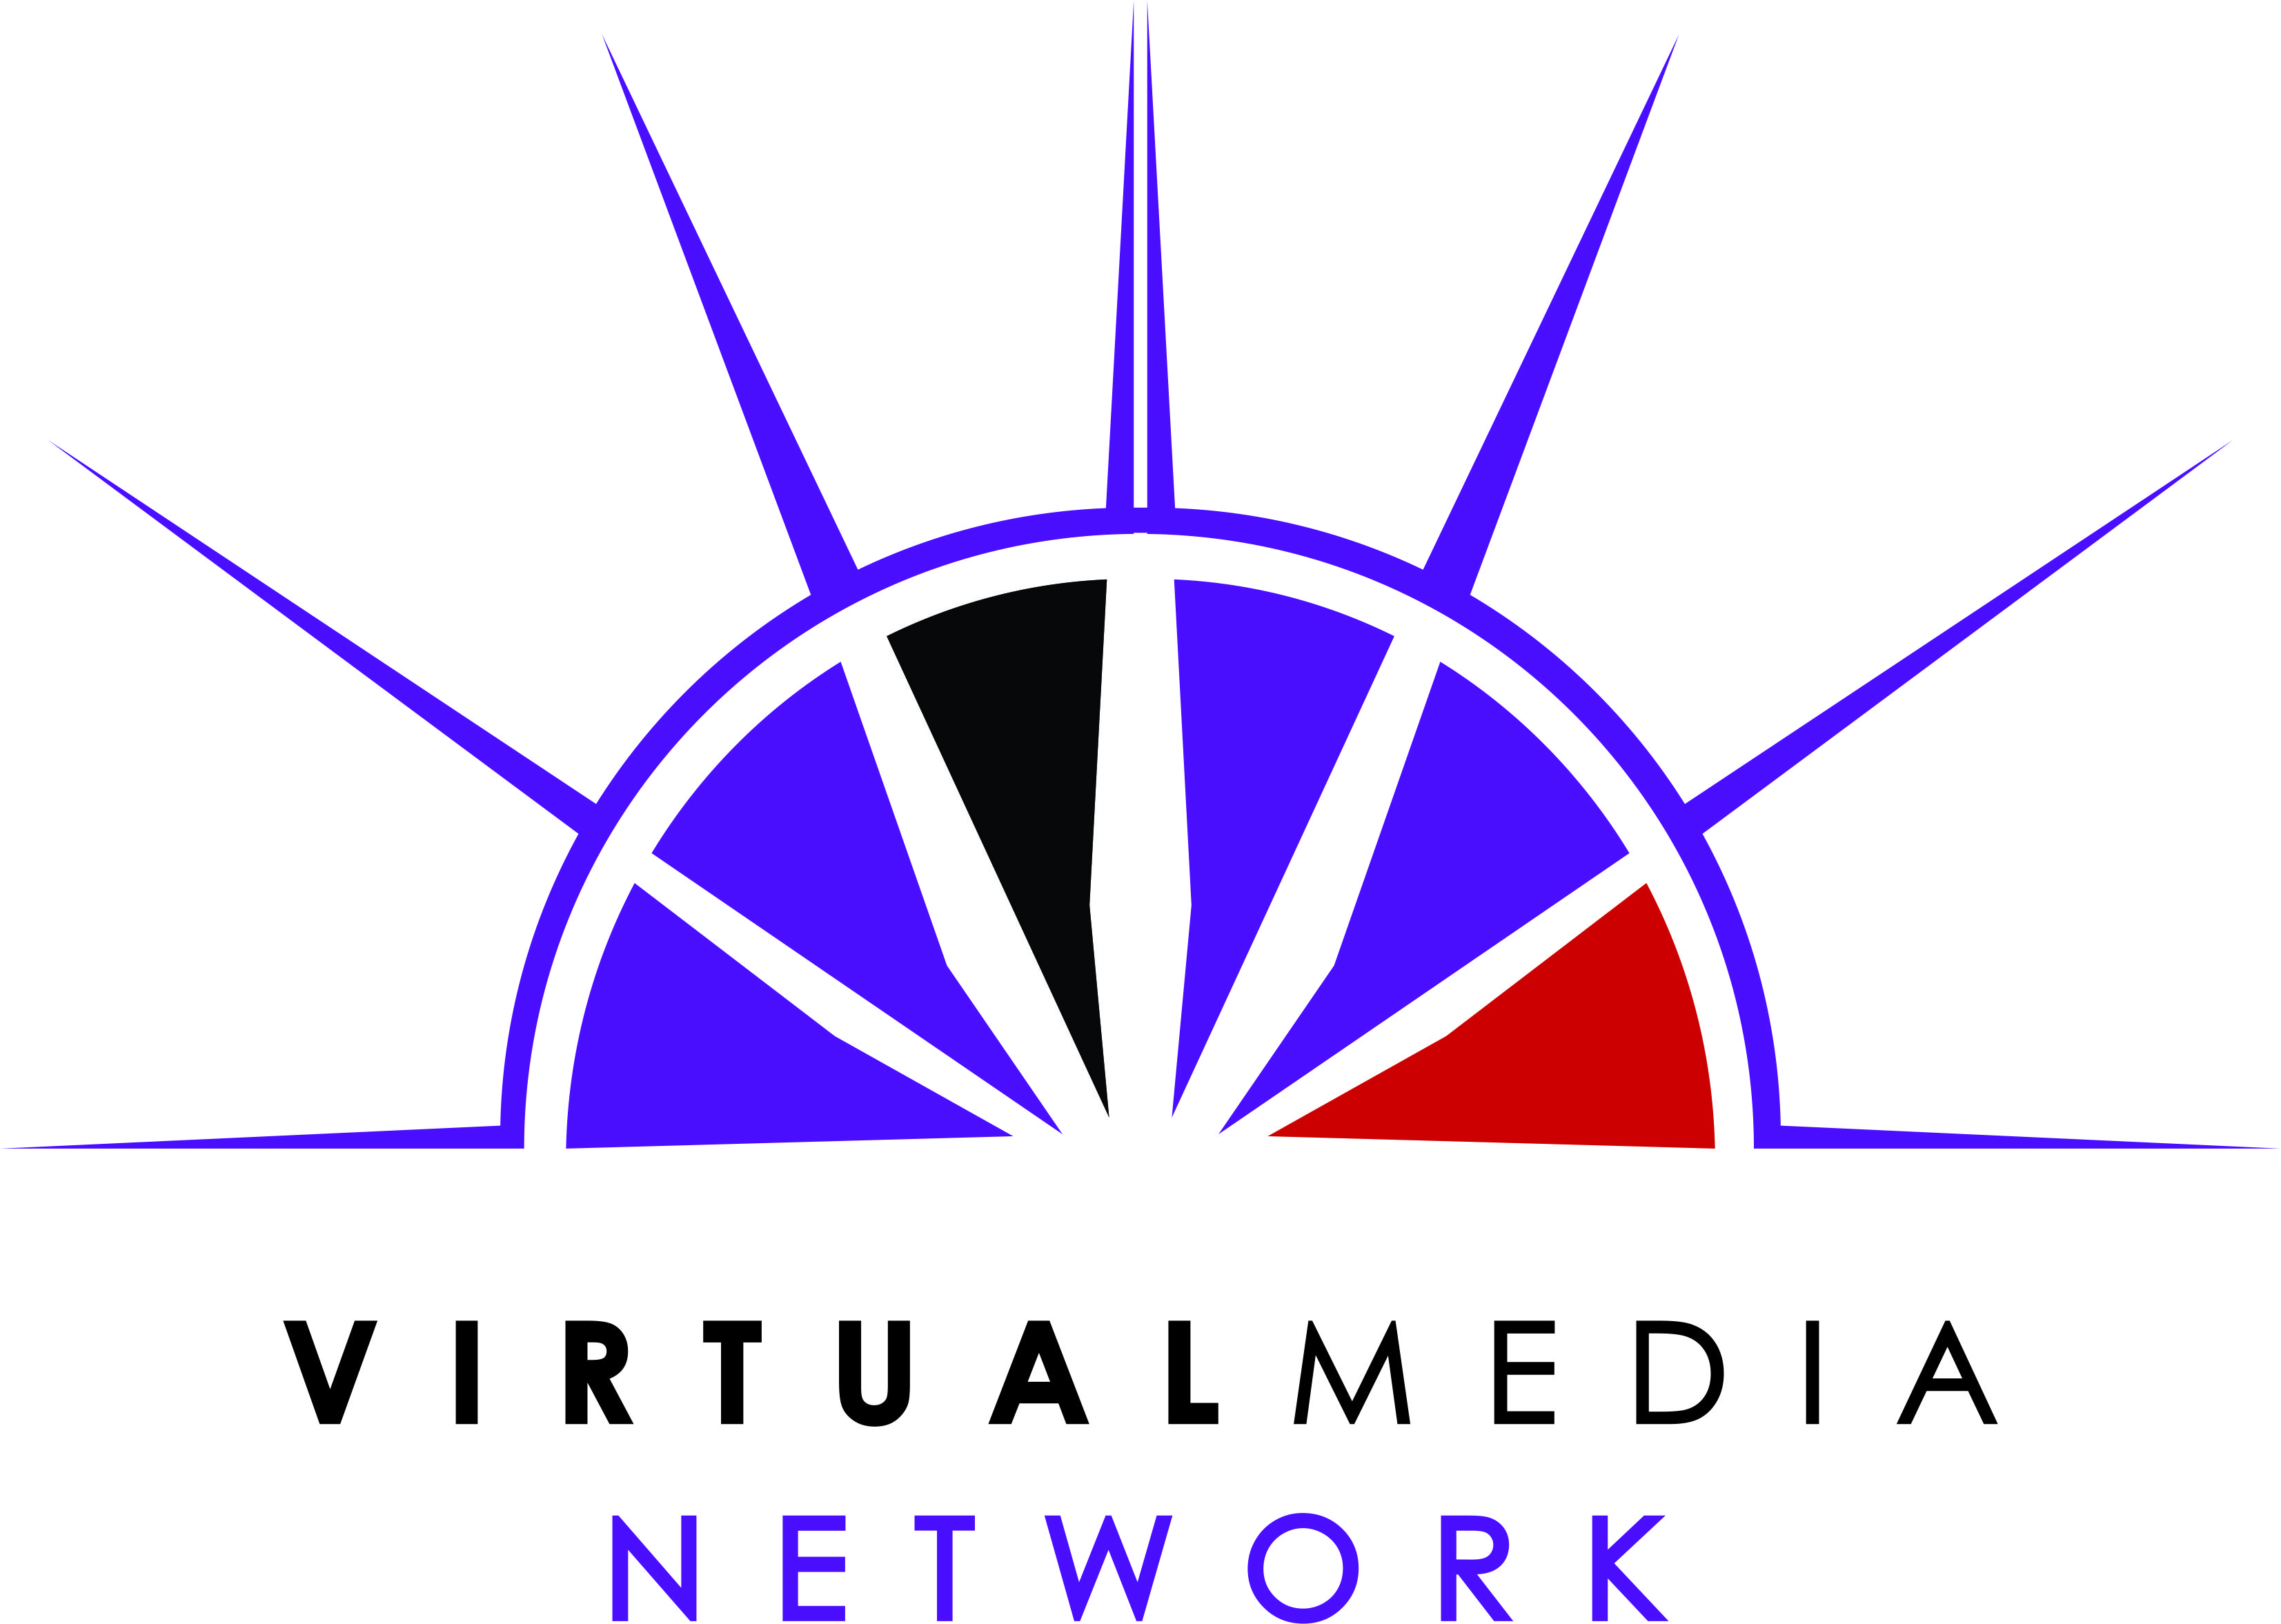 Virtual Media Network LTD